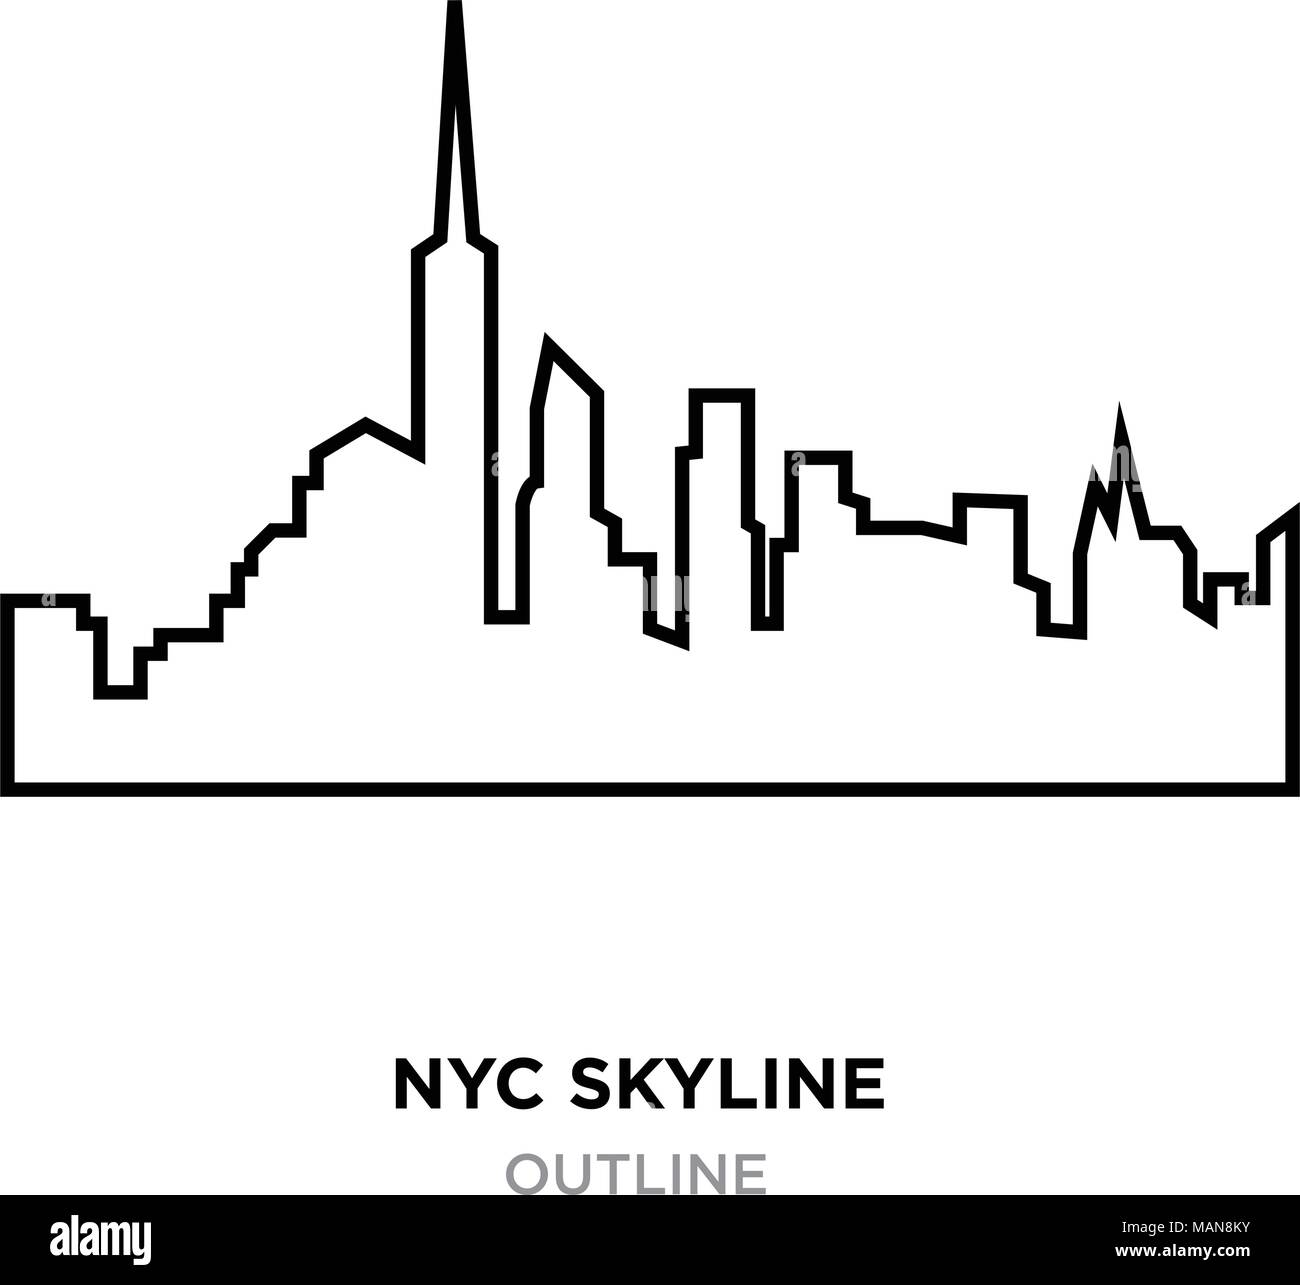 Nyc Skyline Outline On White Background, Vector